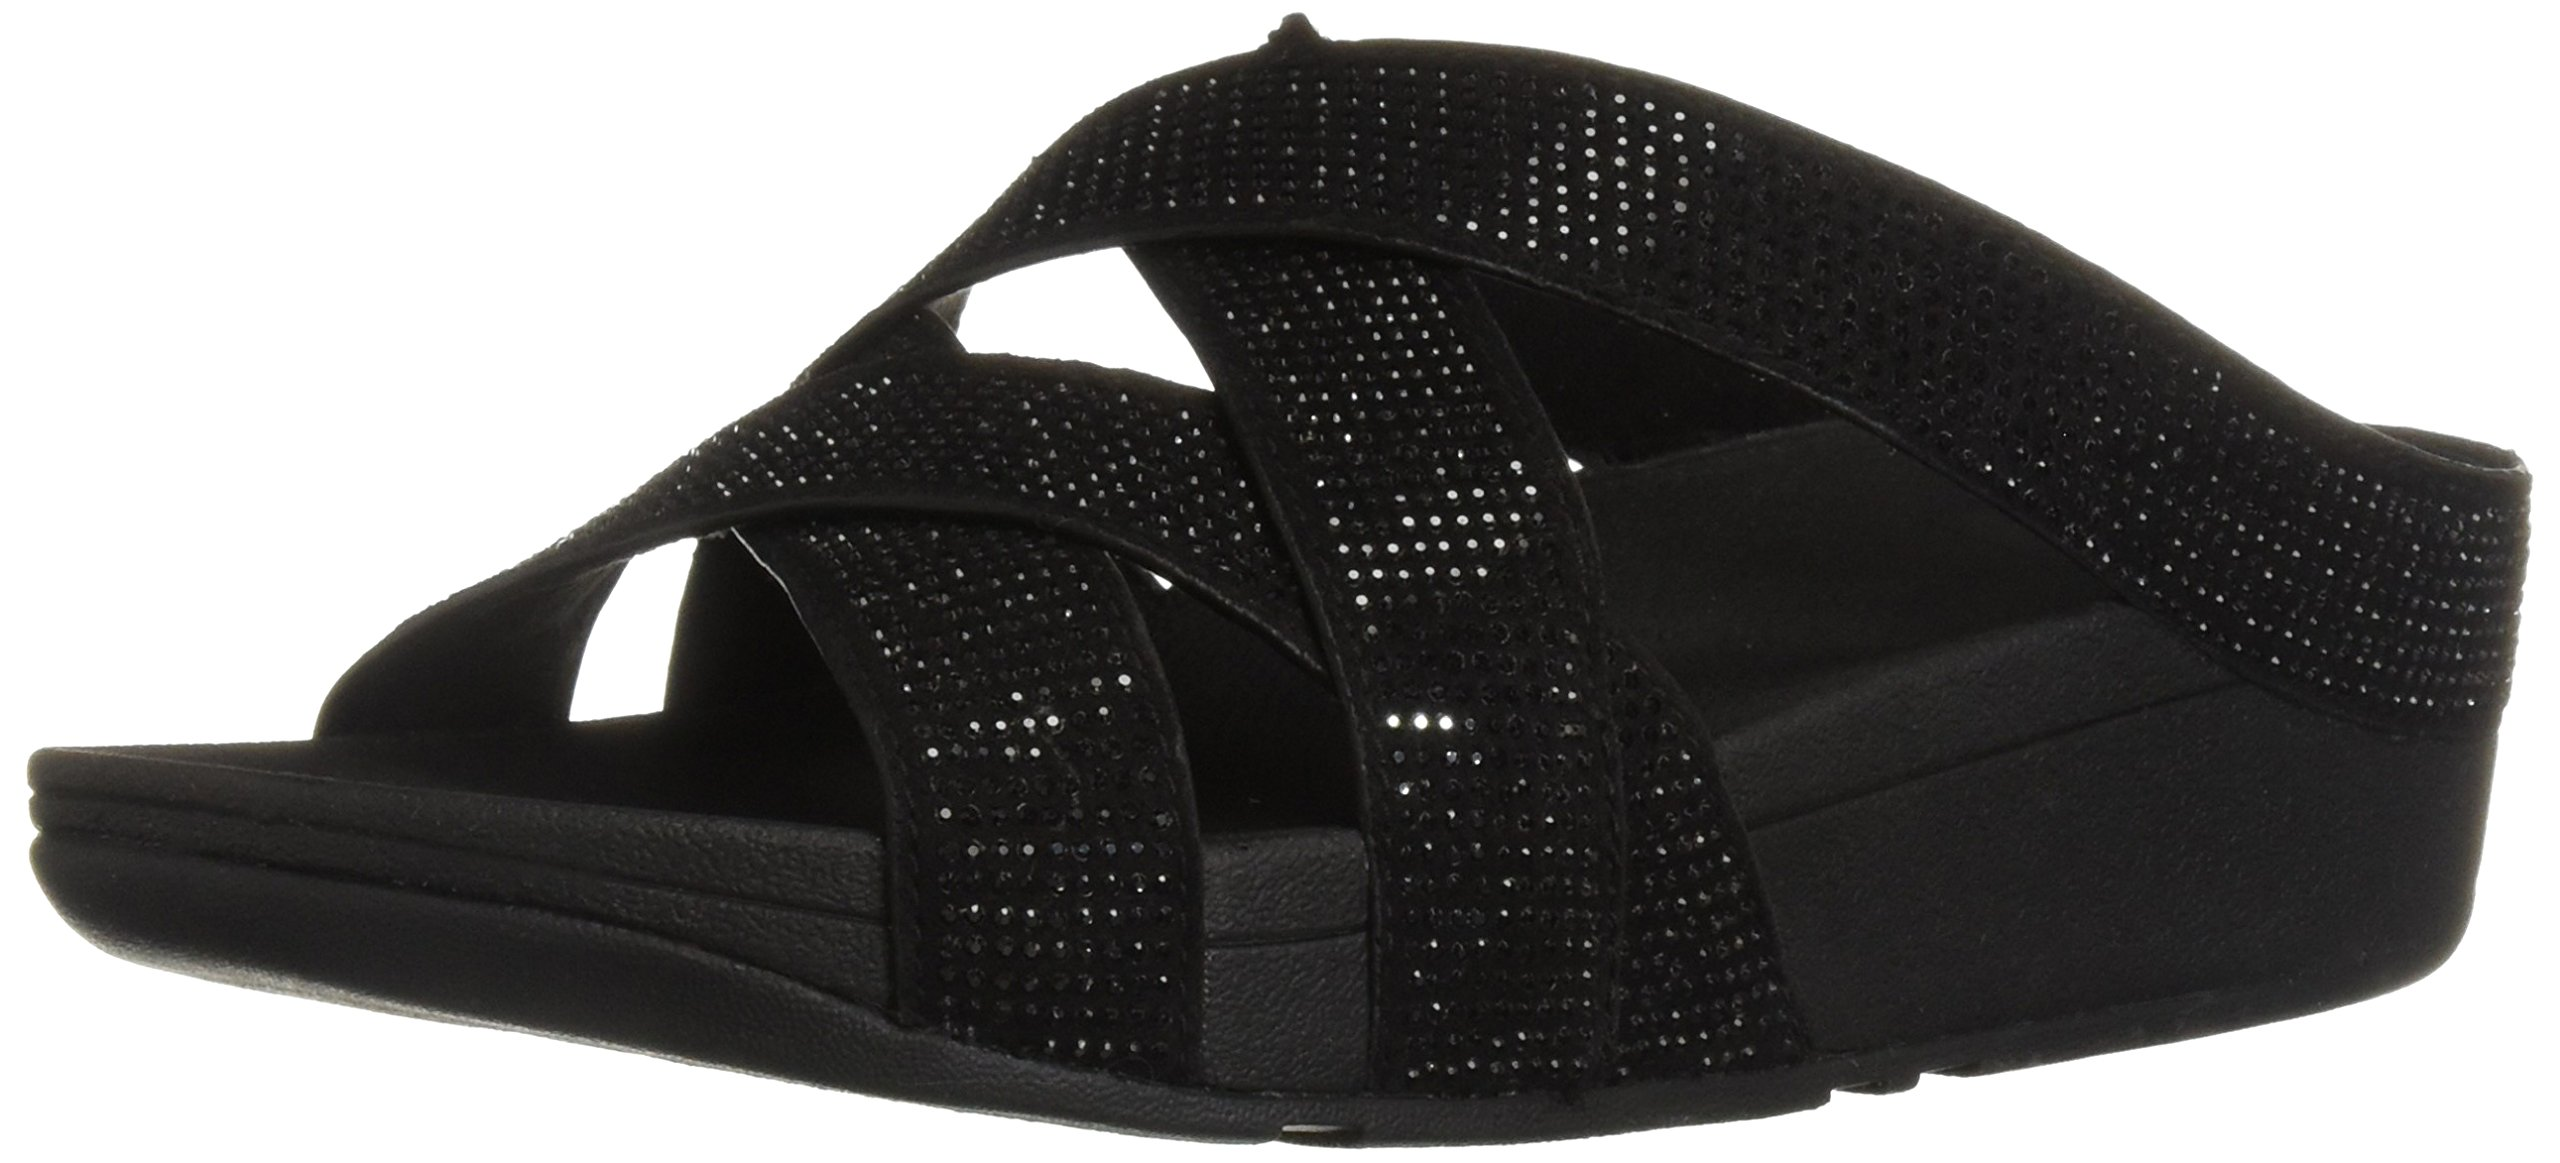 FitFlop Women's Slinky Rokkit Criss-Cross Slide Sandal, Black, 8 M US